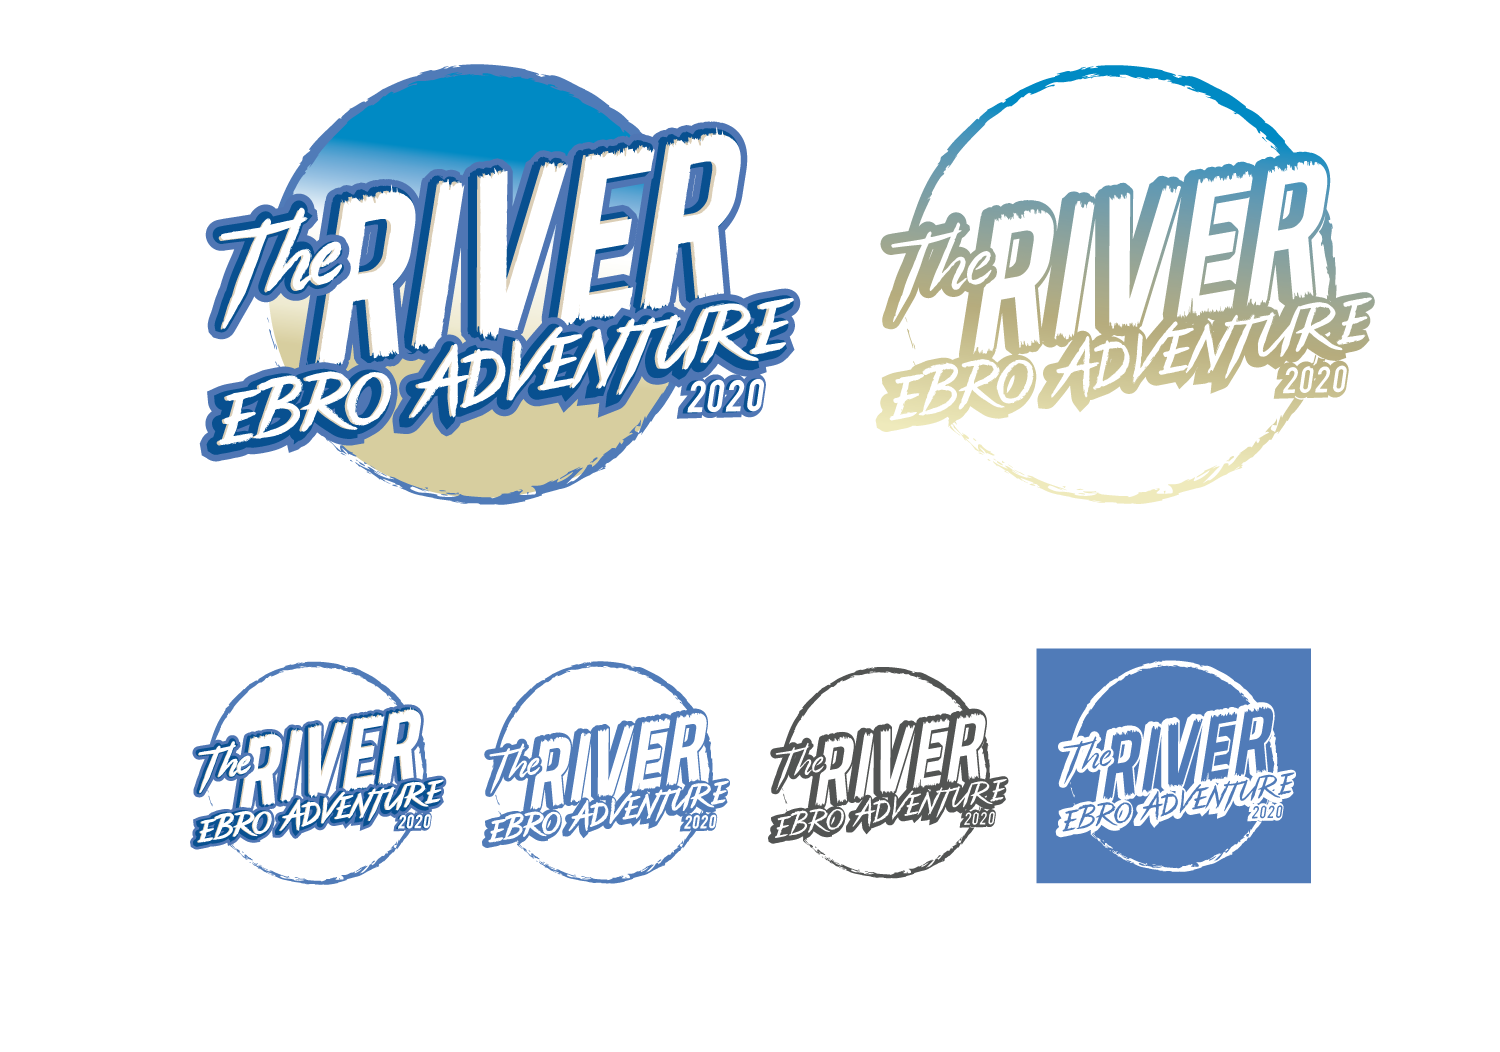 the-river-ebro-adventure_logos_2